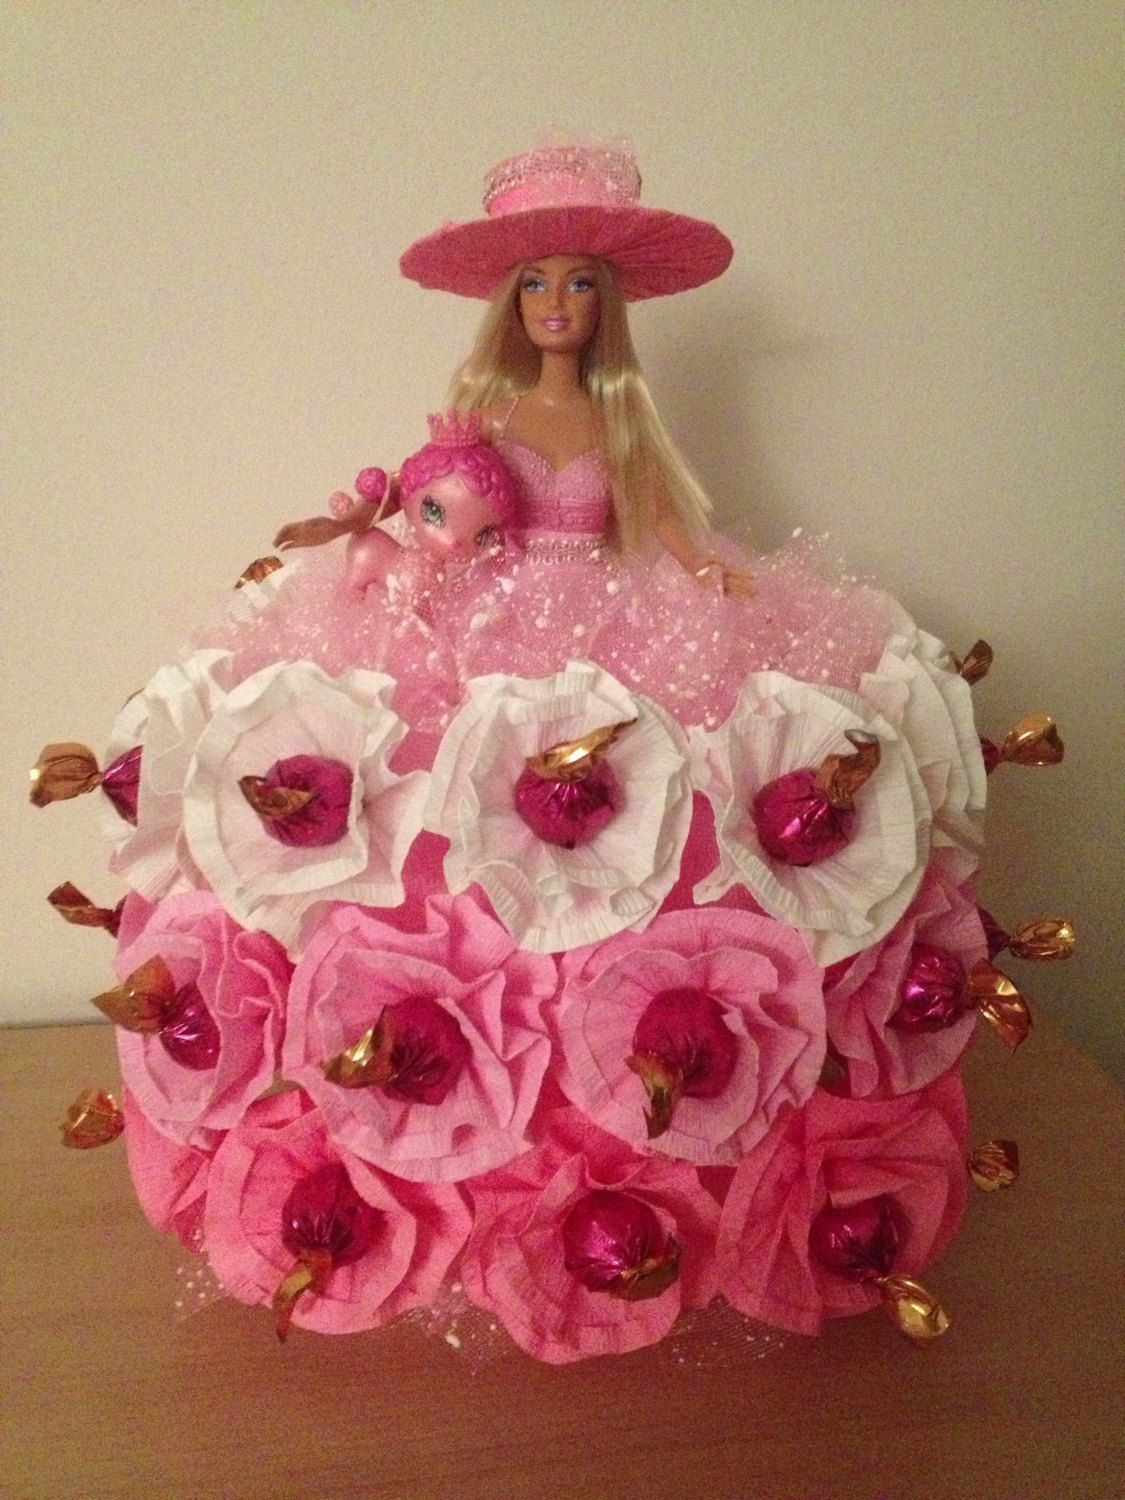 Chocolate bouquet on pinterest candy flowers bouquet of chocolate - Dolls Made With Candy Godiva Chocolate Candy Barbie Doll Toy Birthday Party Valentin Day Candy Bouquetbarbie